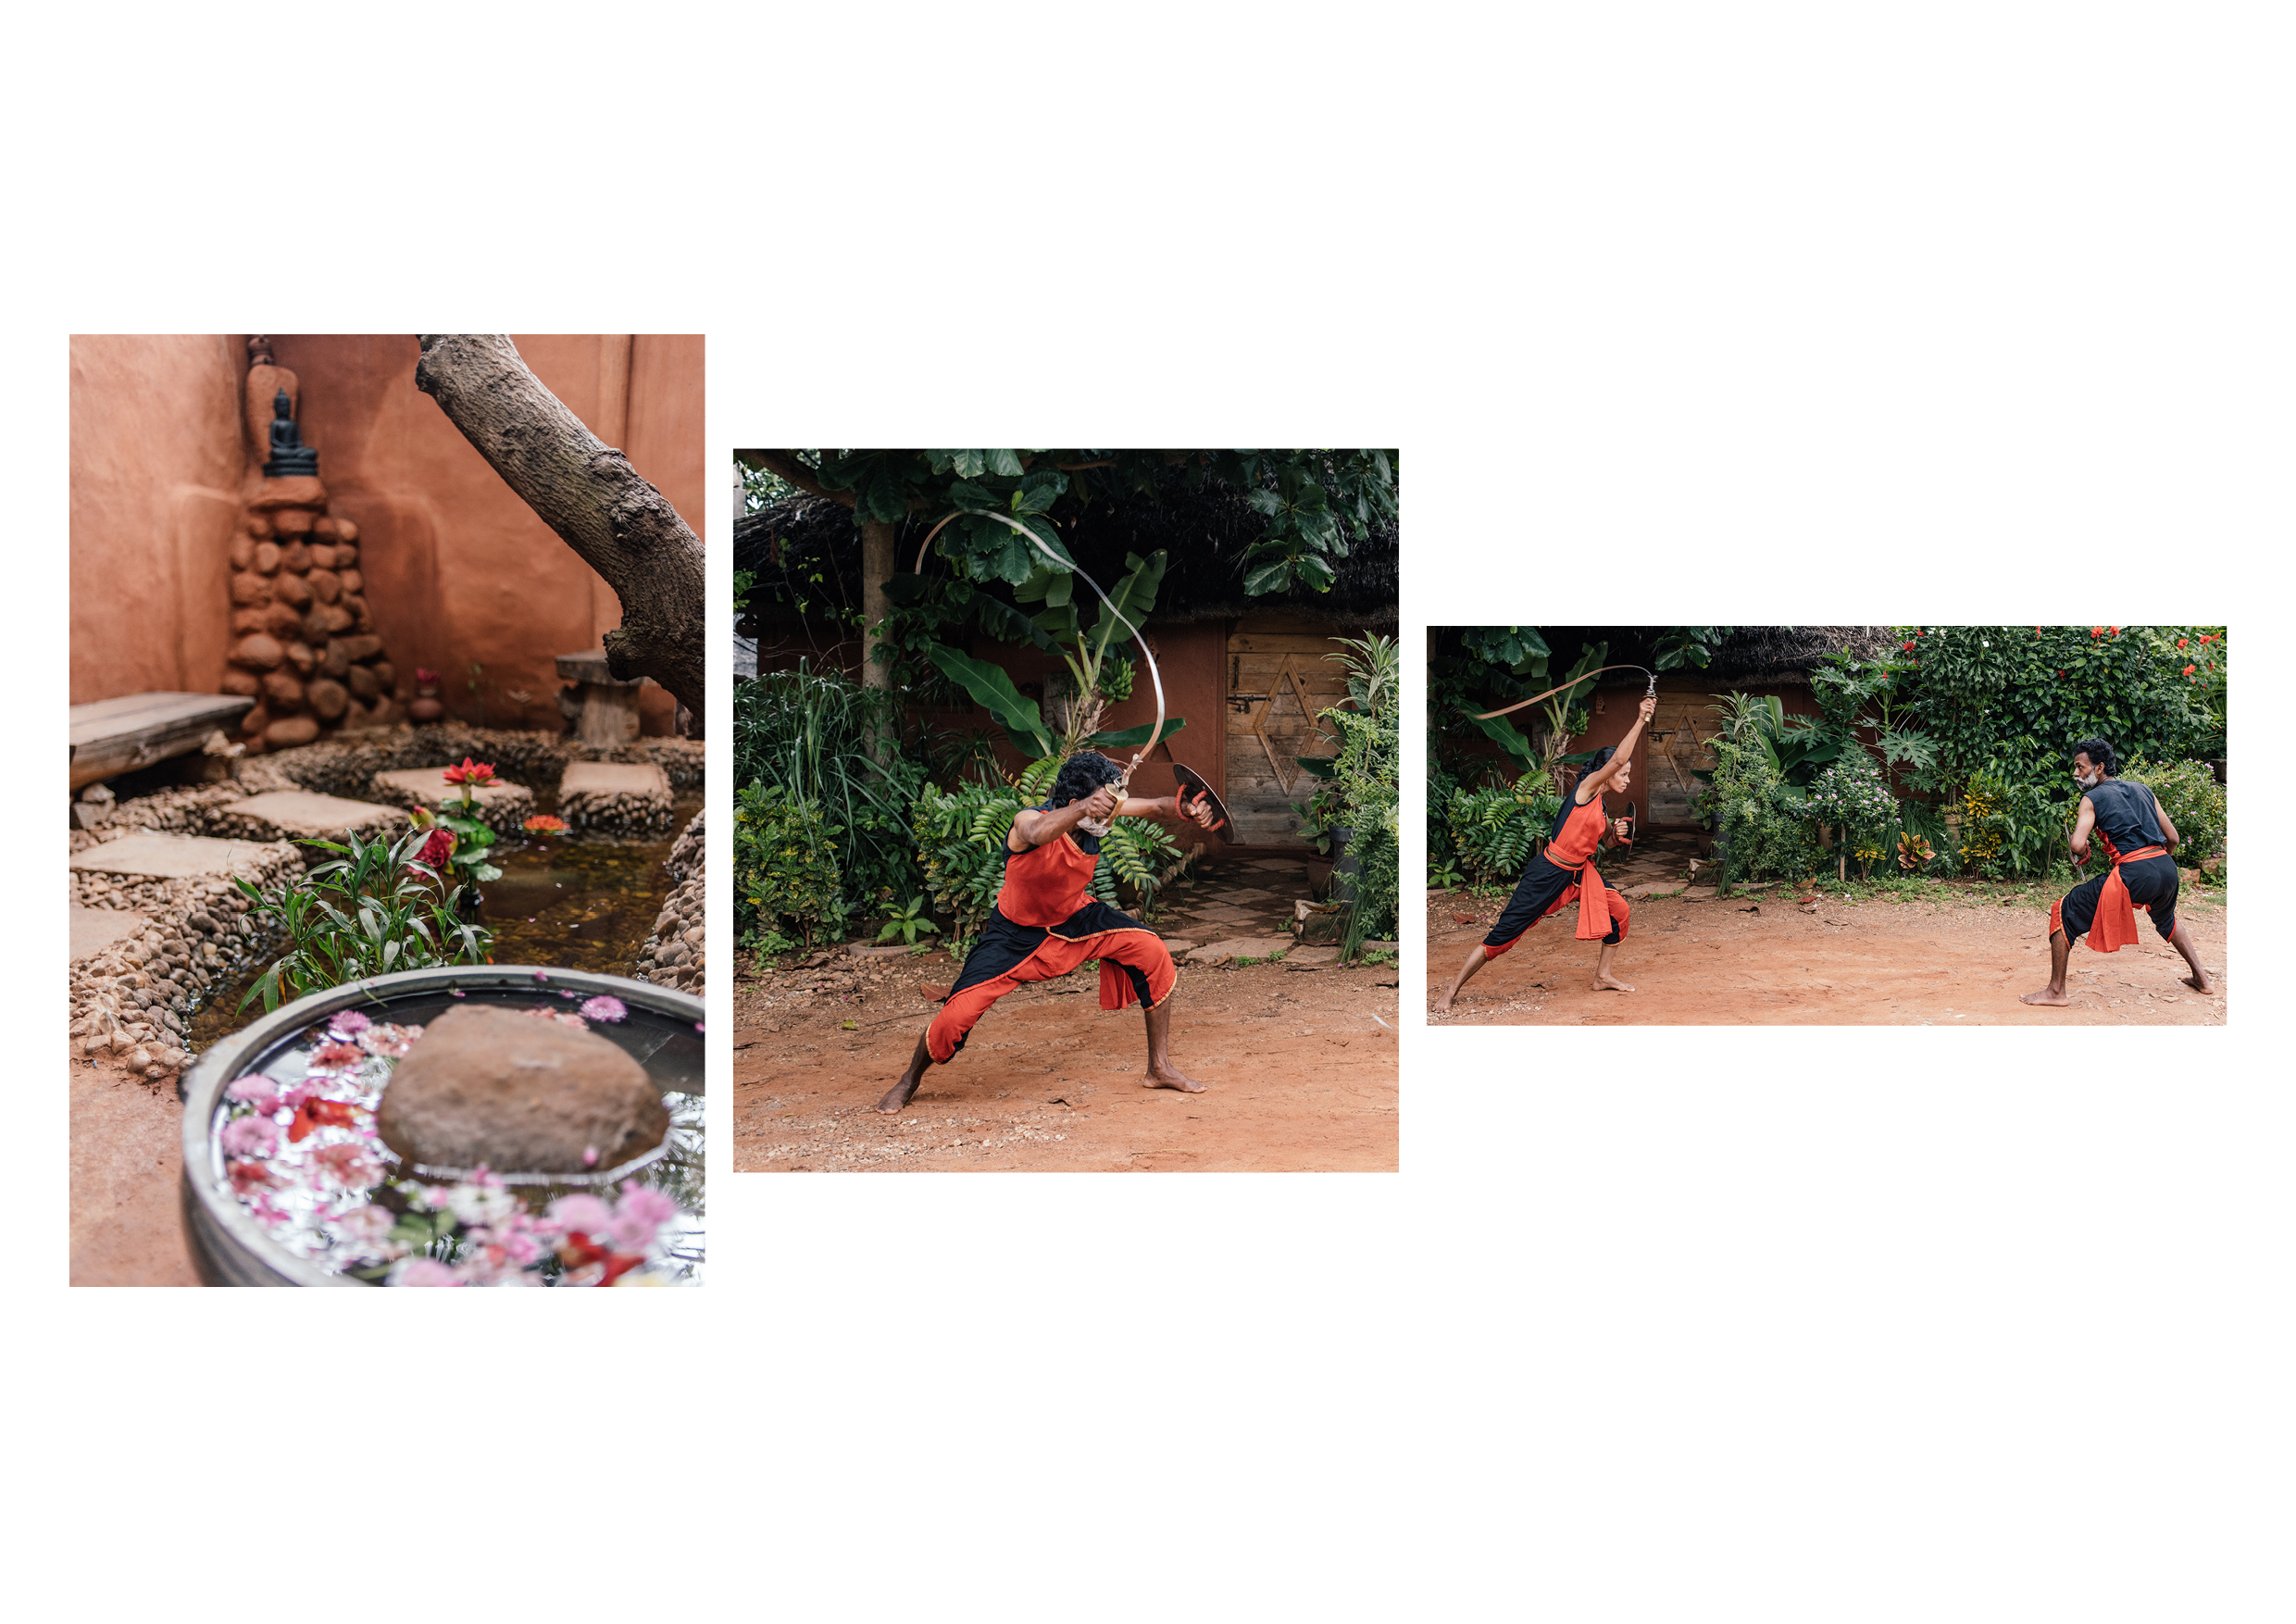 The Urumi- a six foot flexible sword is the final weapon taught in Kalaripayattu, and is considered to be as lethal as the body.